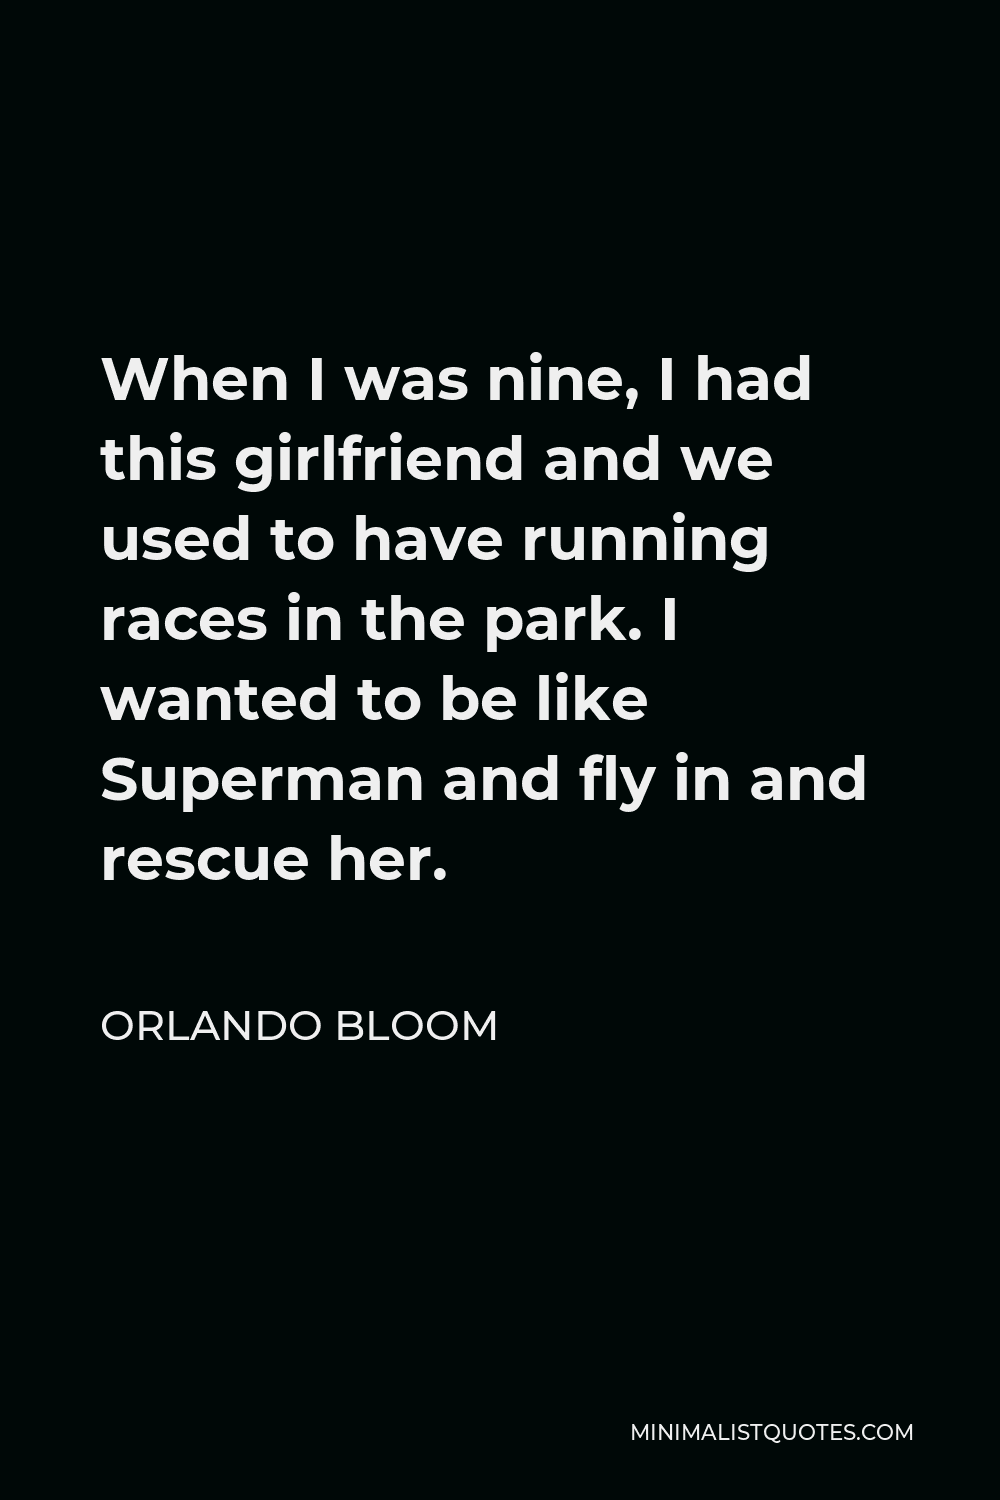 Orlando Bloom Quote - When I was nine, I had this girlfriend and we used to have running races in the park. I wanted to be like Superman and fly in and rescue her.